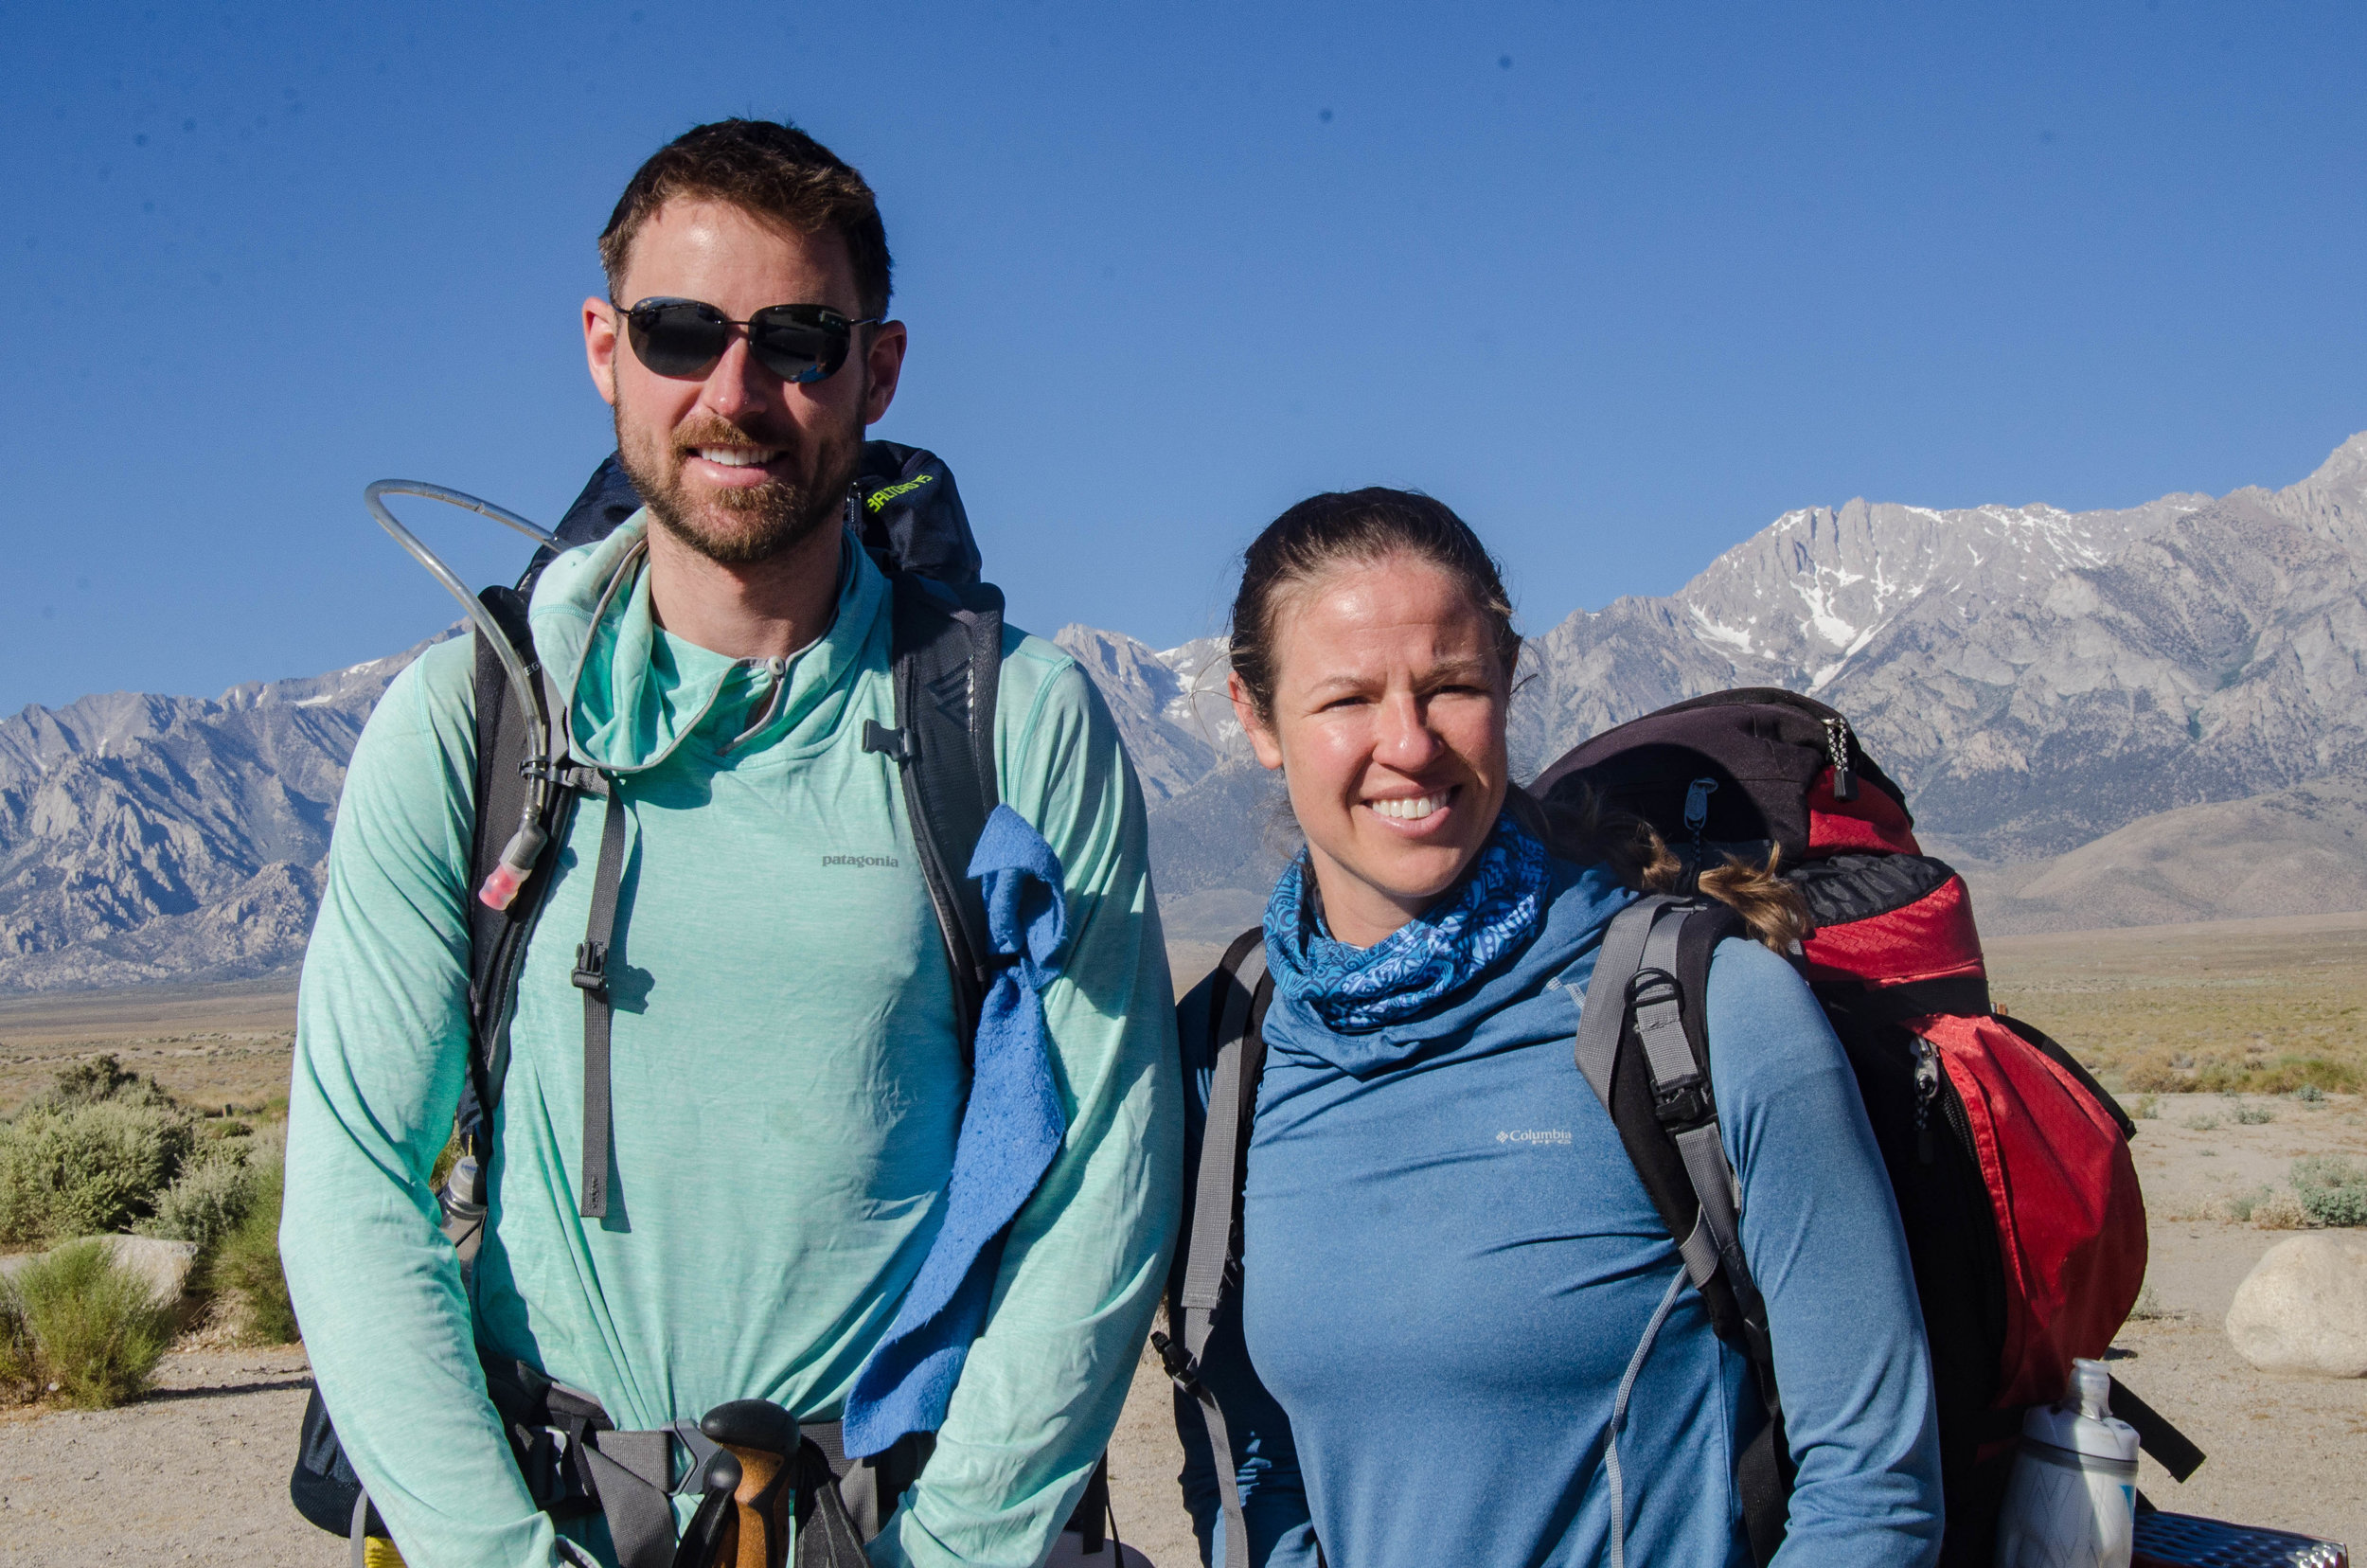 Robert and Kira heading SOBO on the JMT